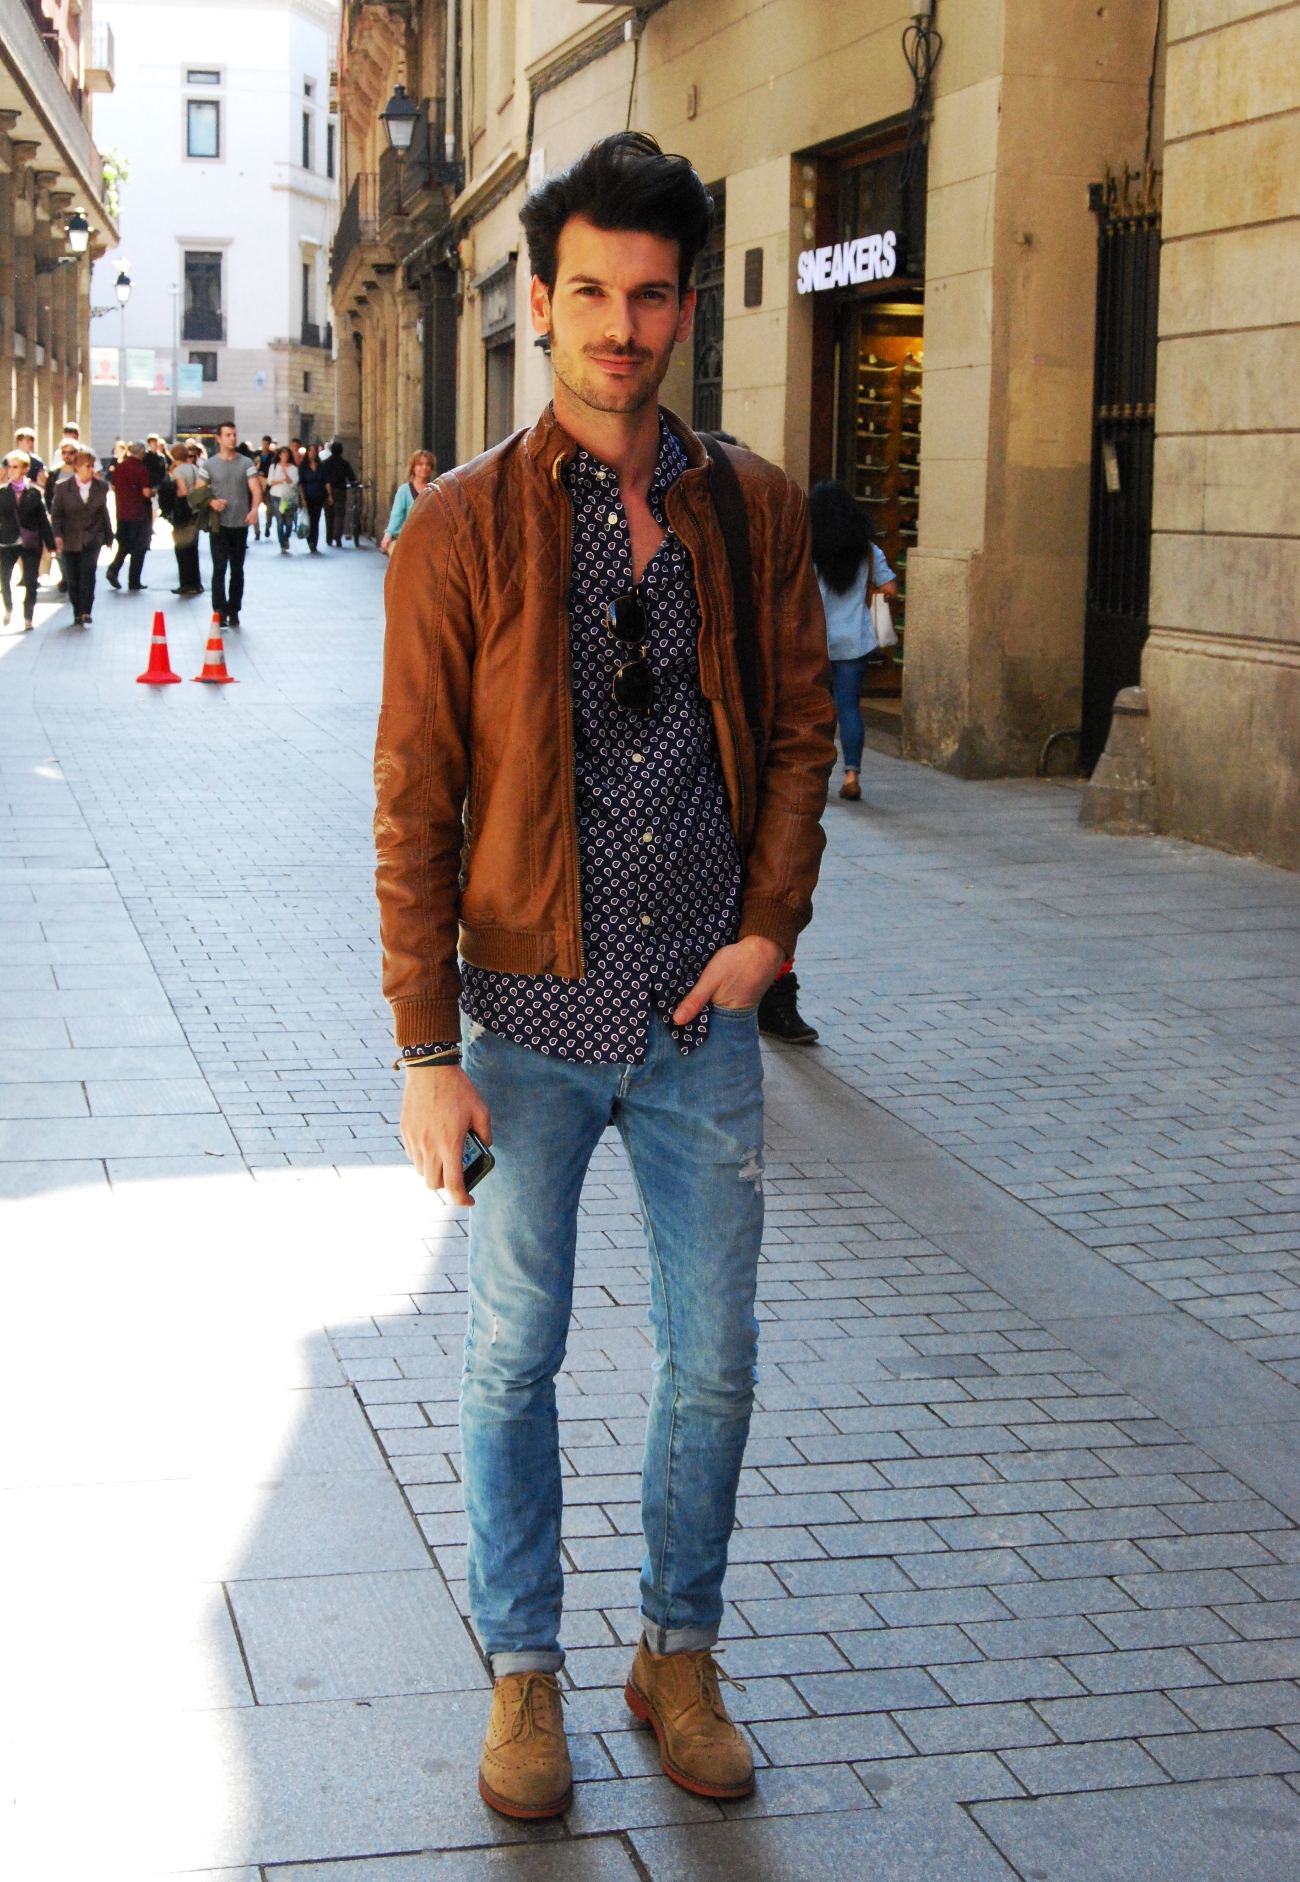 17. Urban Outfit Ideas For Men